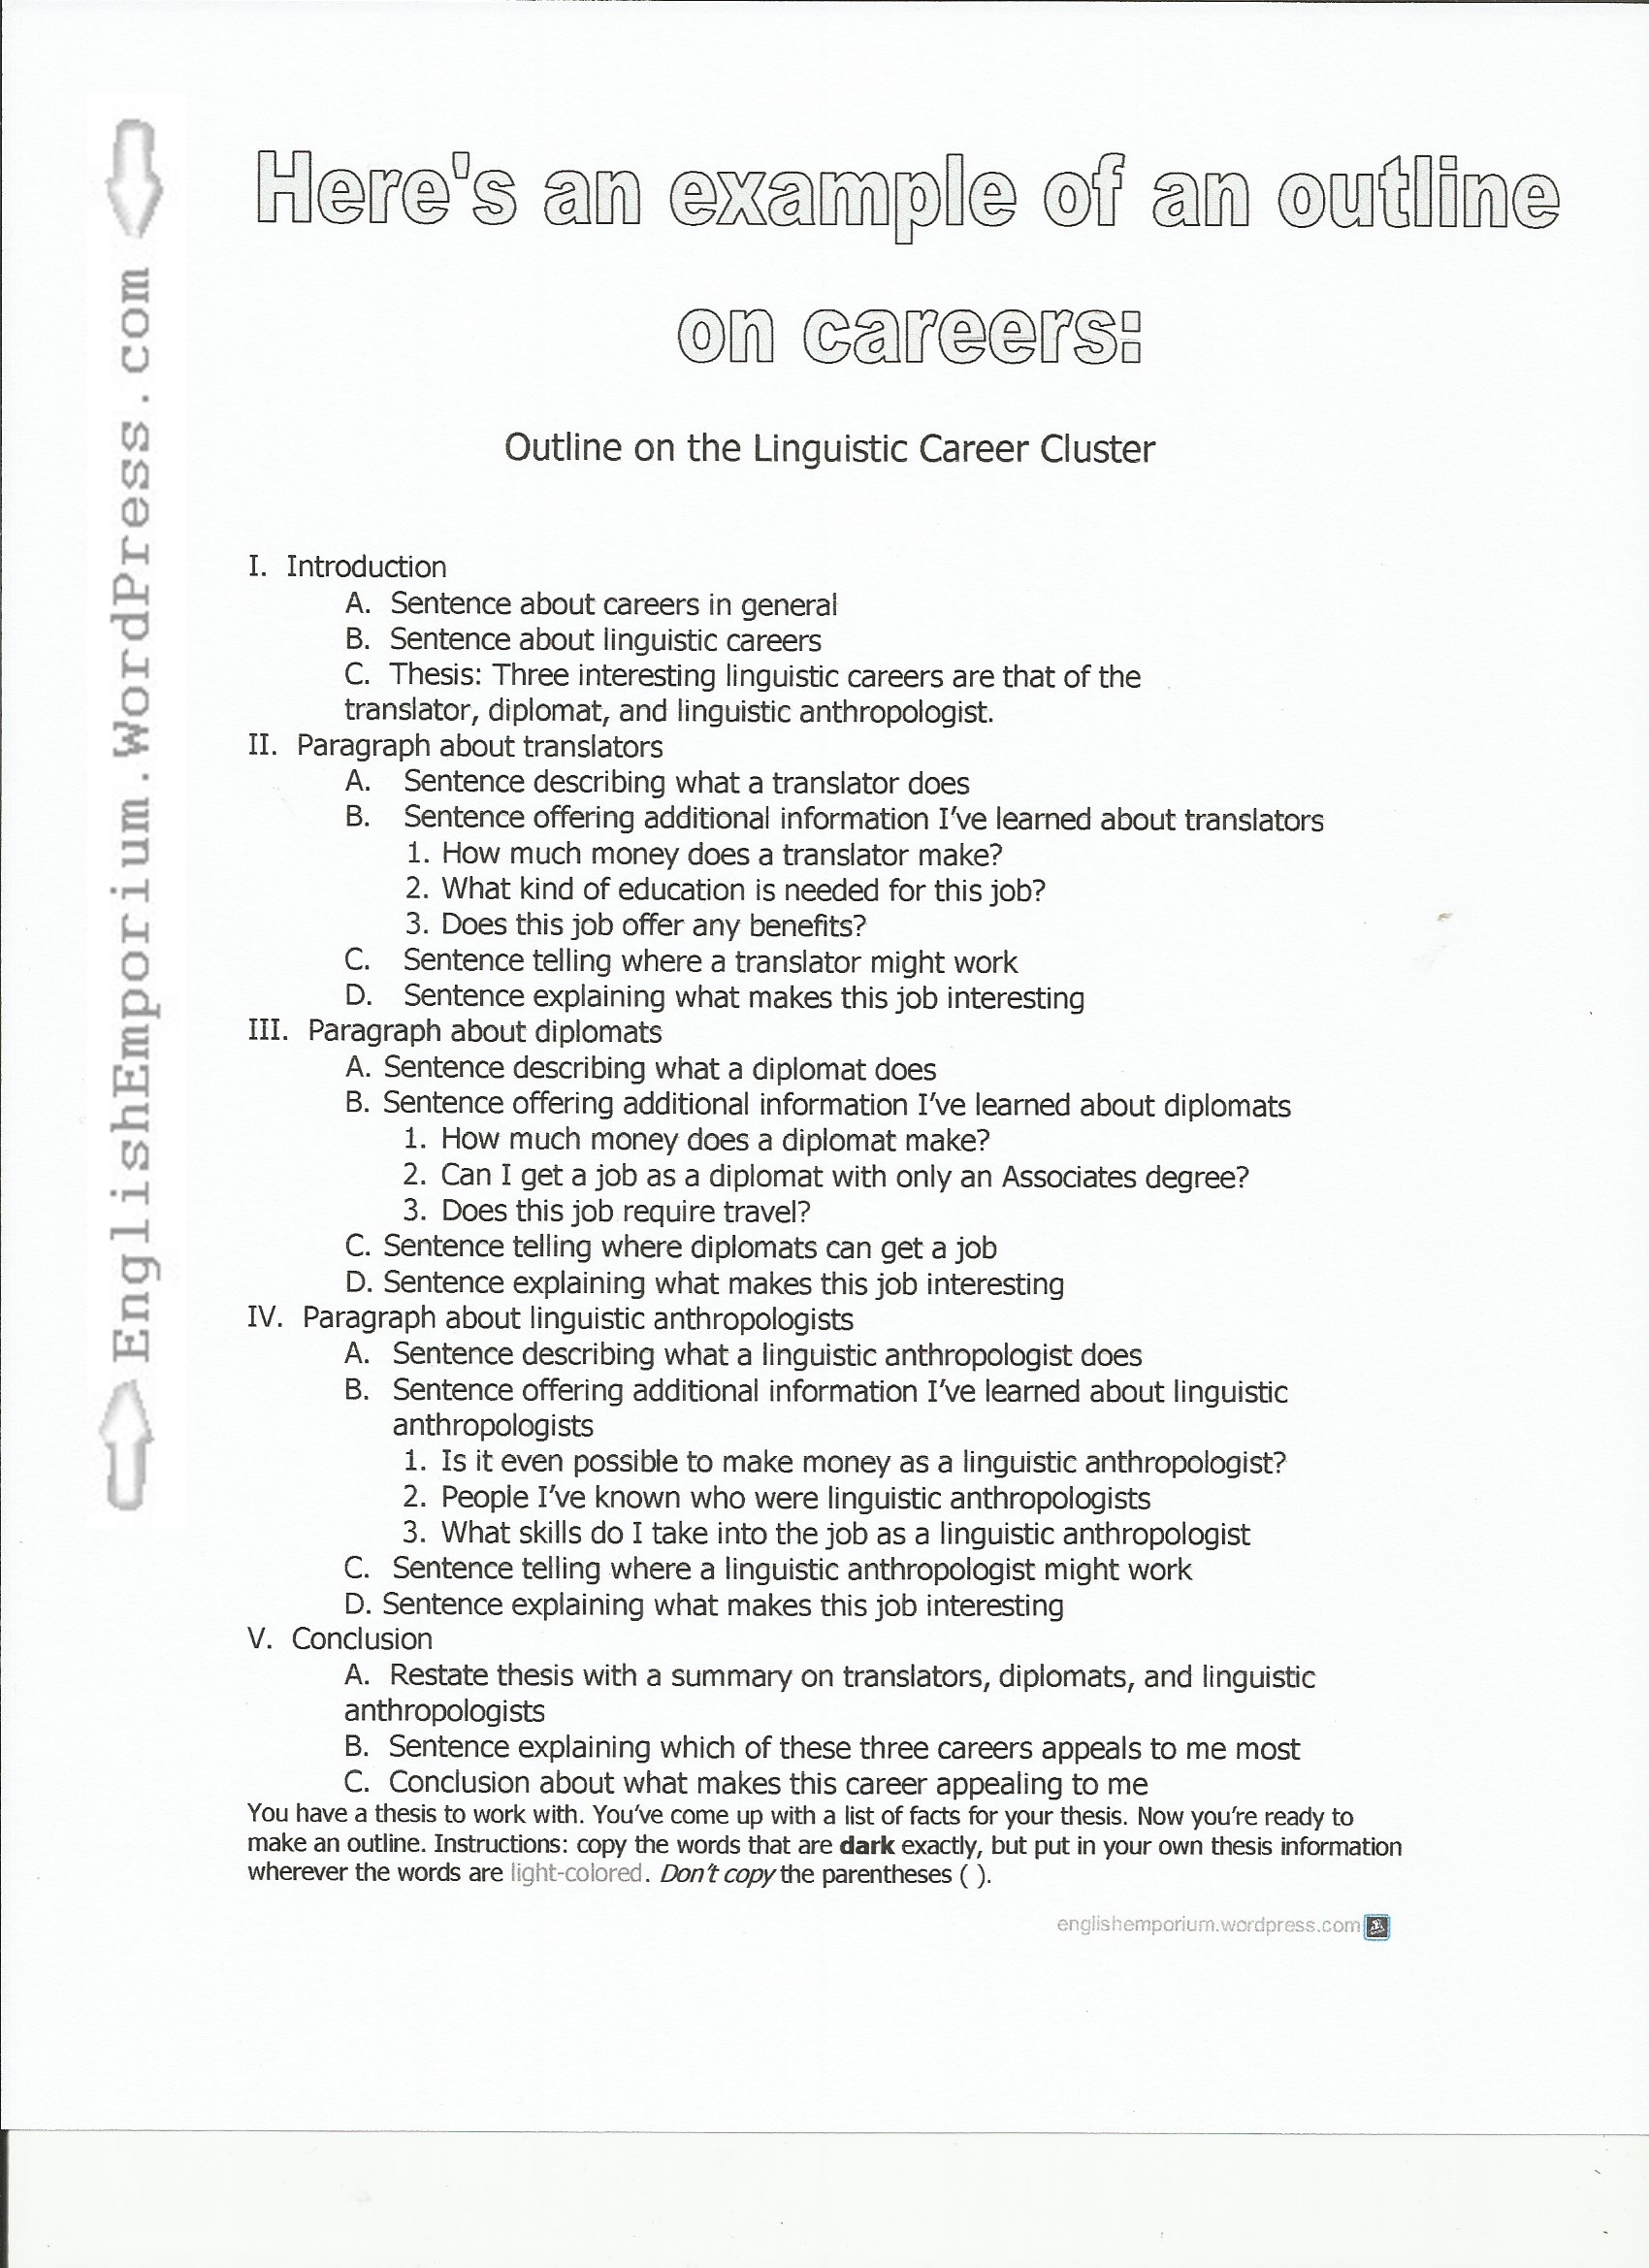 004 Outline On Careers Pg Research Breathtaking Paper Thesis Statement For A Topics Full